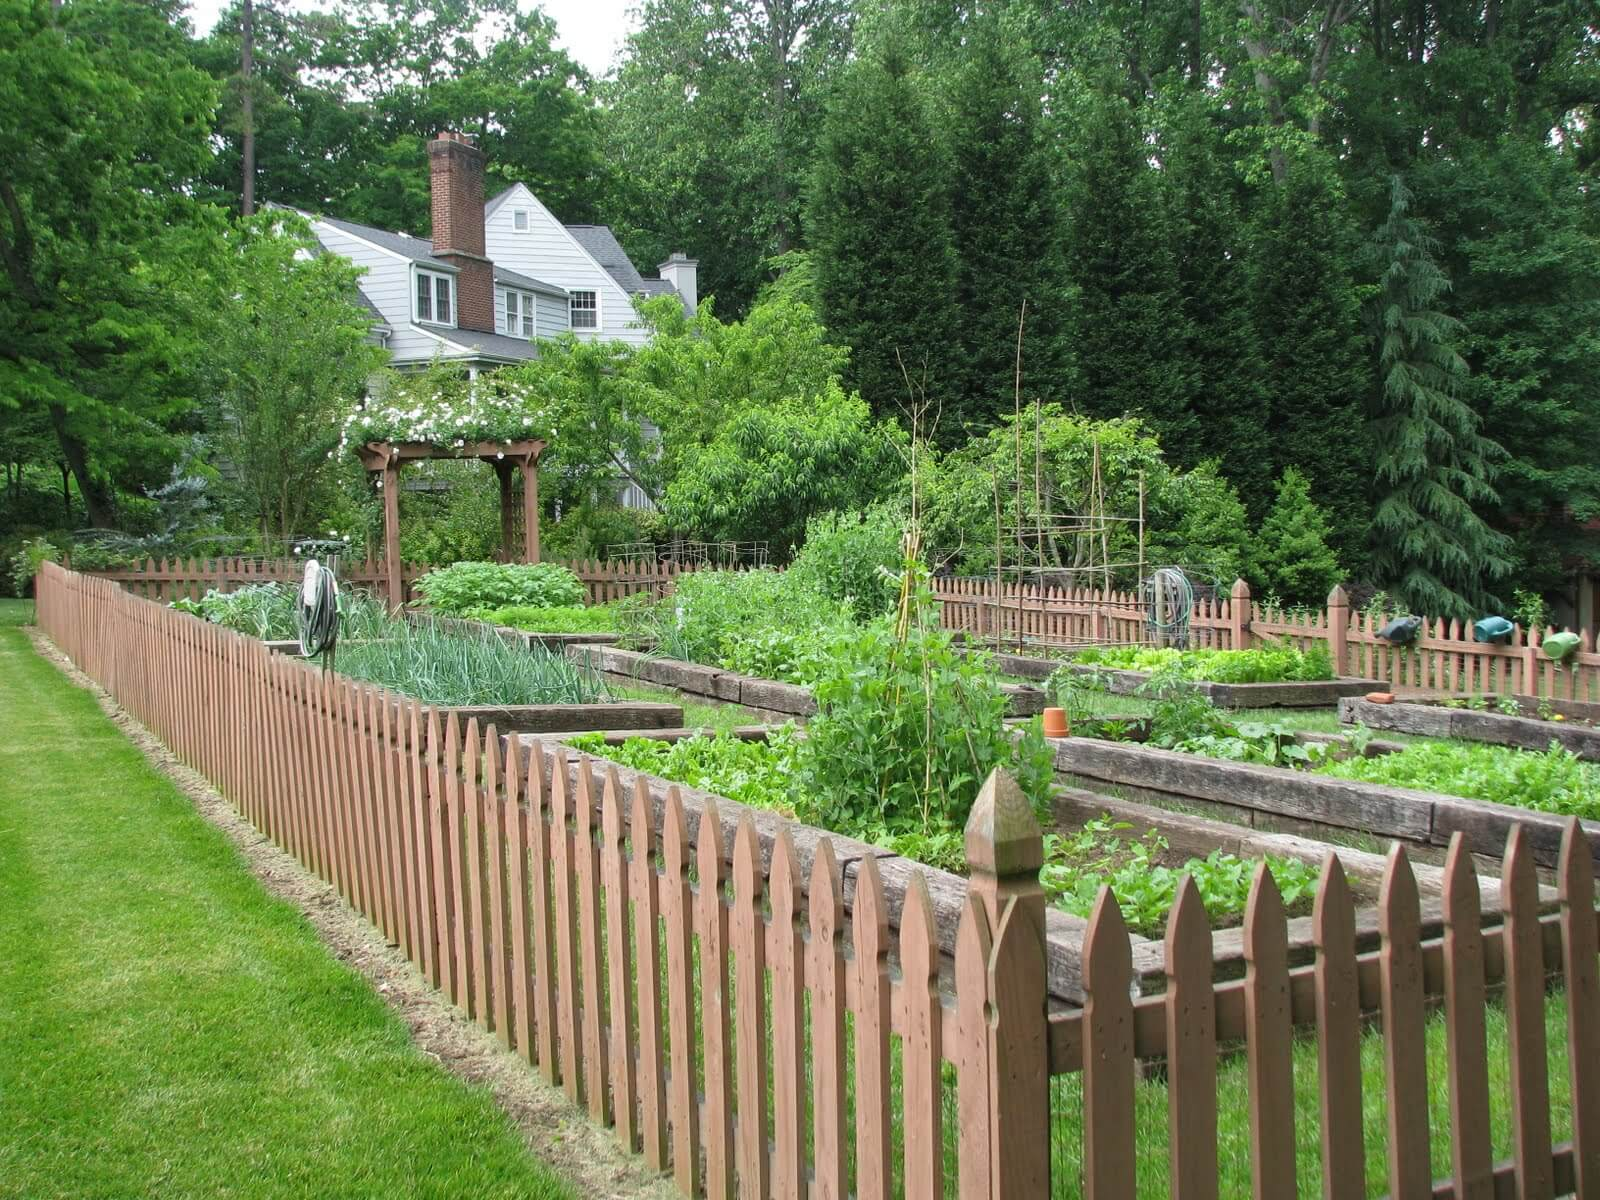 Goedkope Tuinafscheiding Cheap Fence Ideas To Embellish Your Garden And Your Home